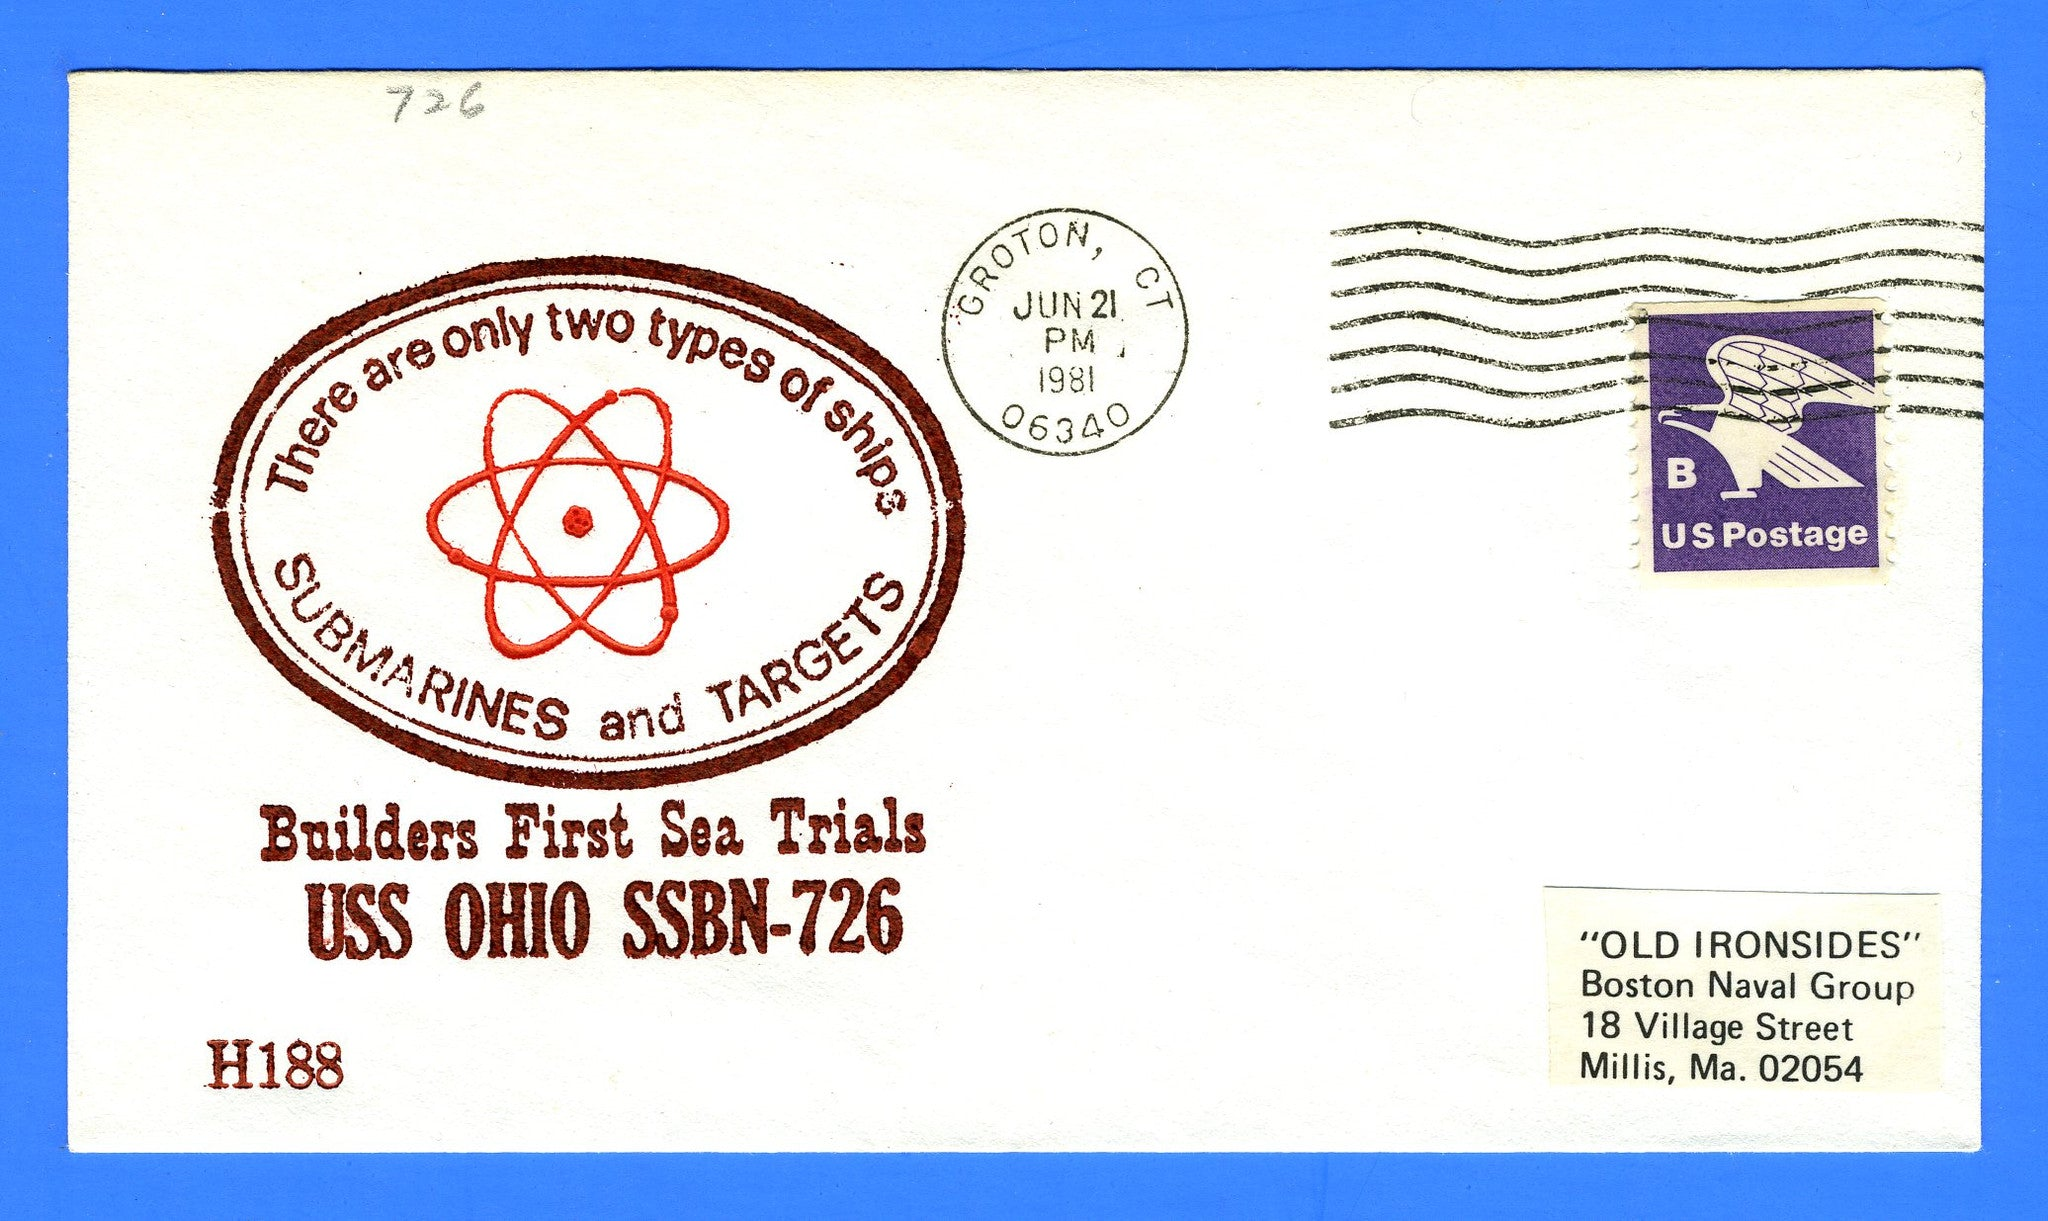 USS Ohio SSBN-726 Builders First Sea Trials June 21, 1981 - Cachet by USS Decatur Chapter No. 4, USCS